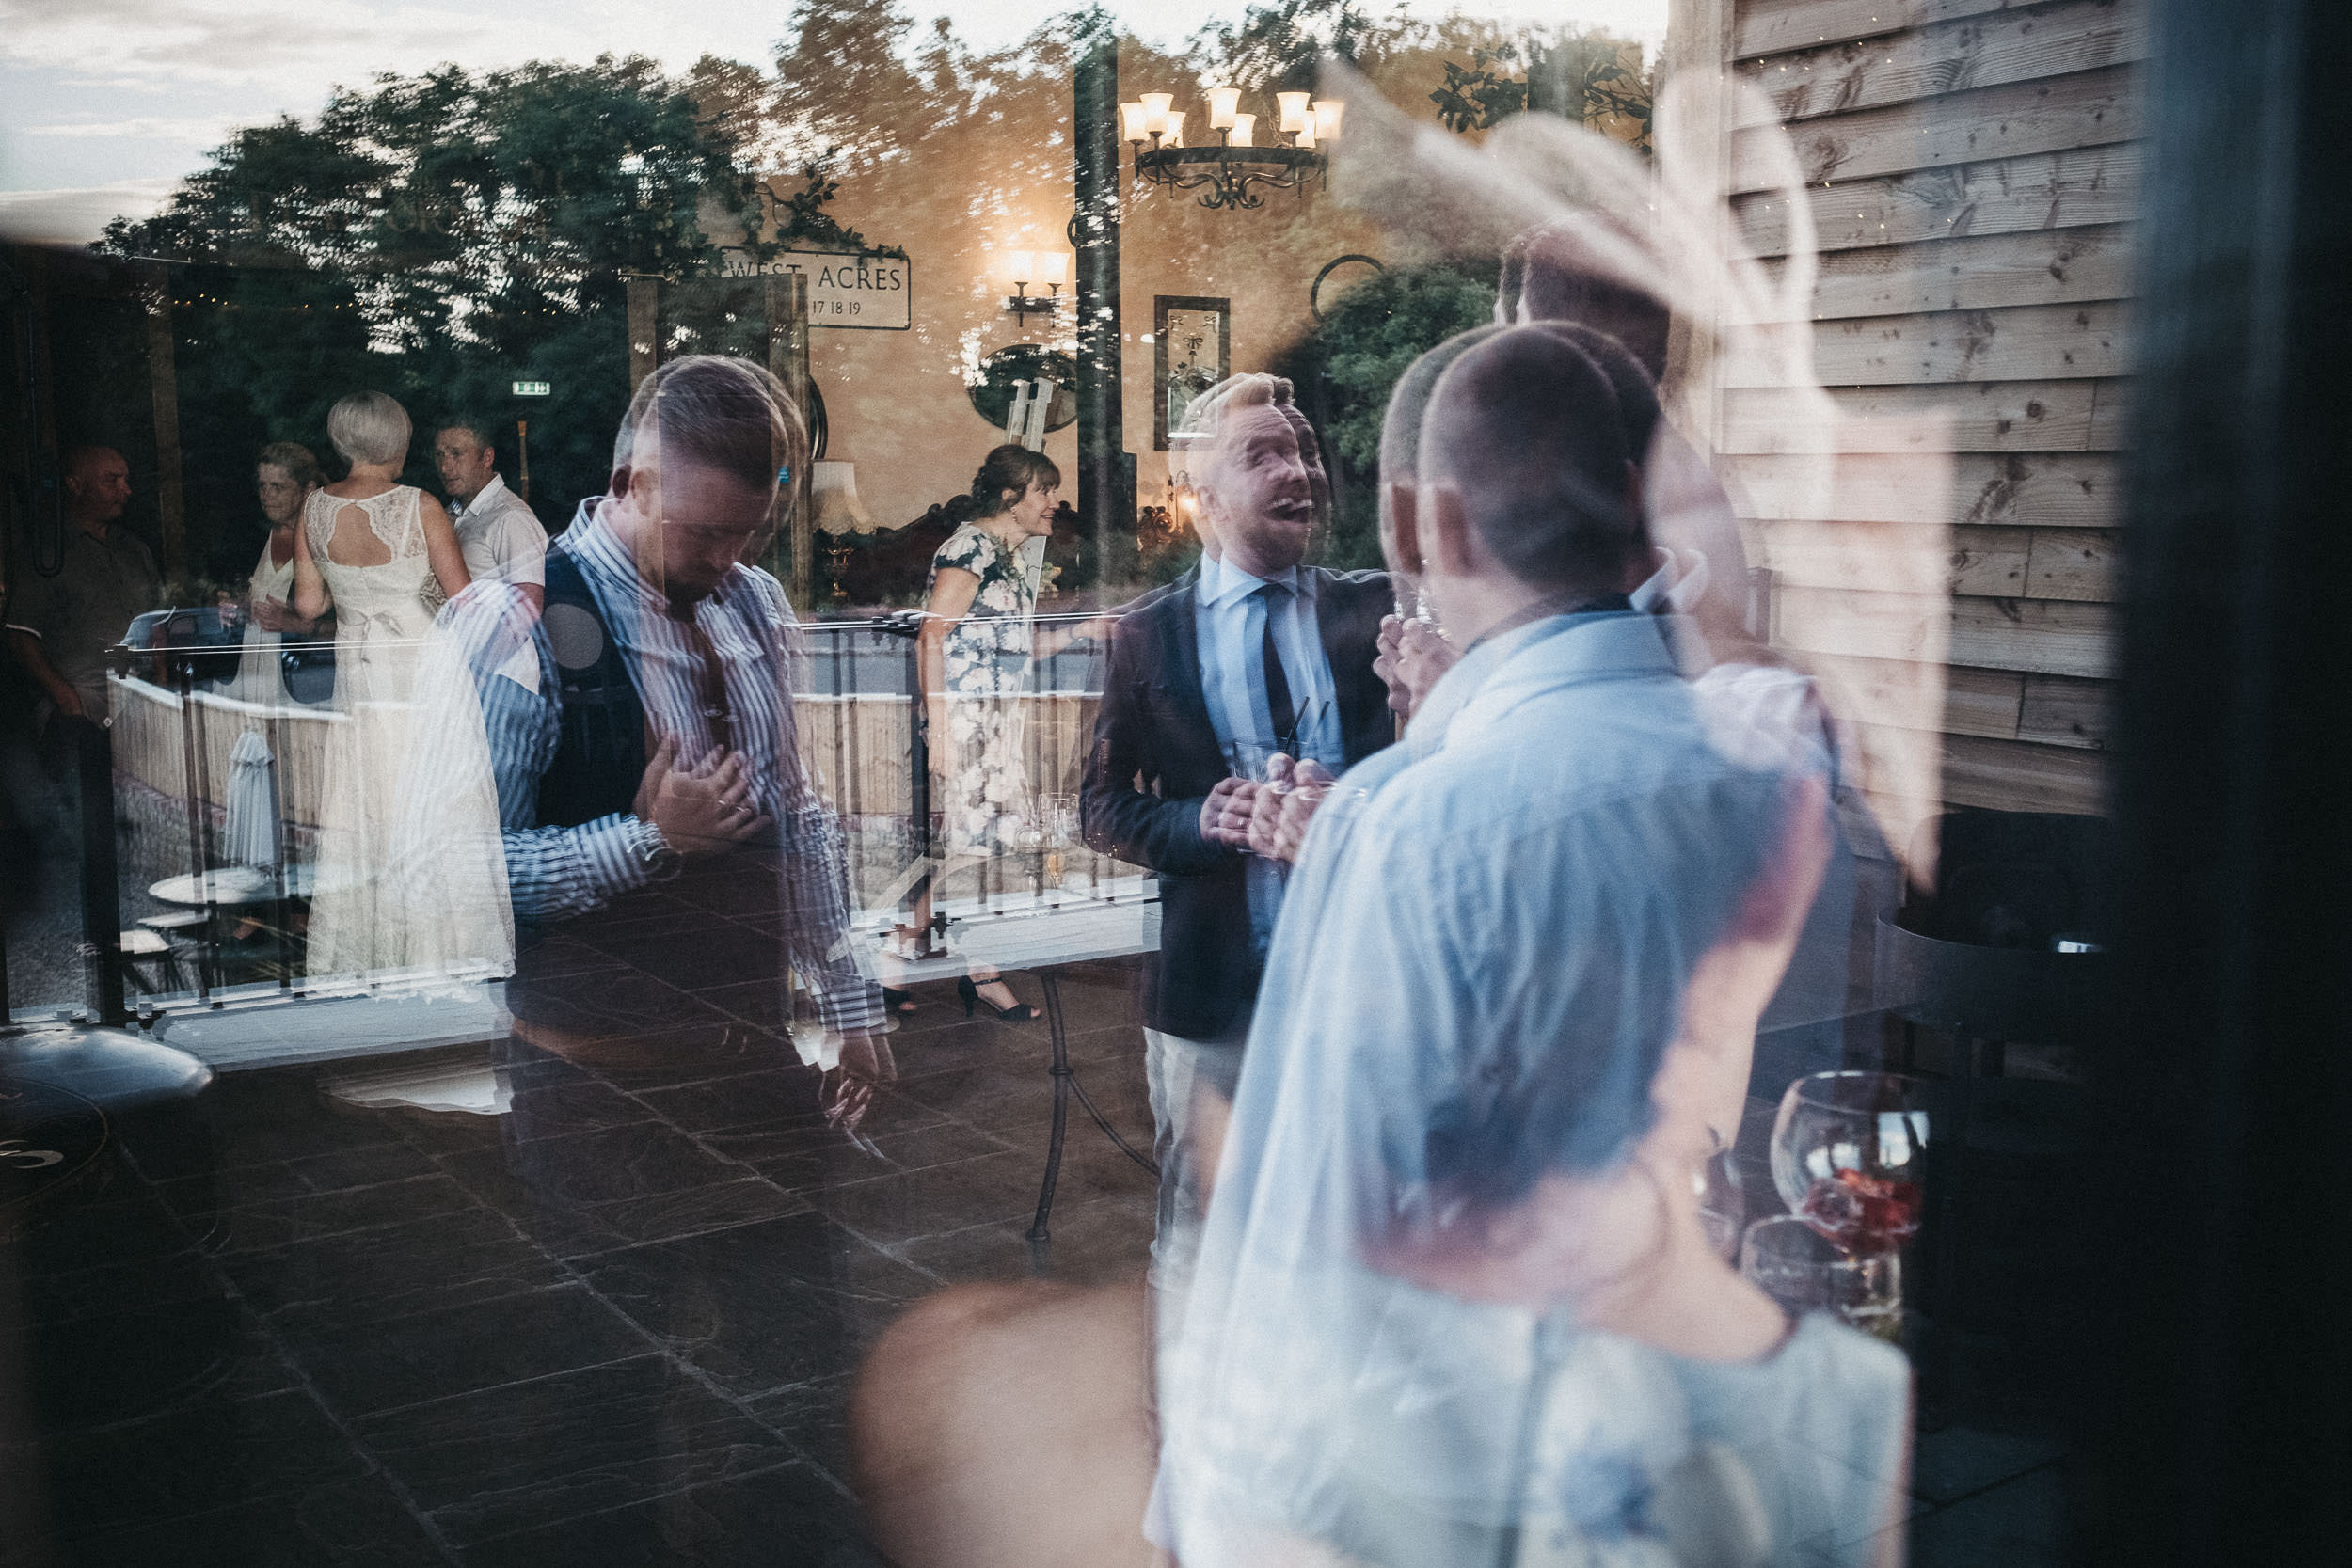 Reflections of bride and guests in window at South Causey Inn